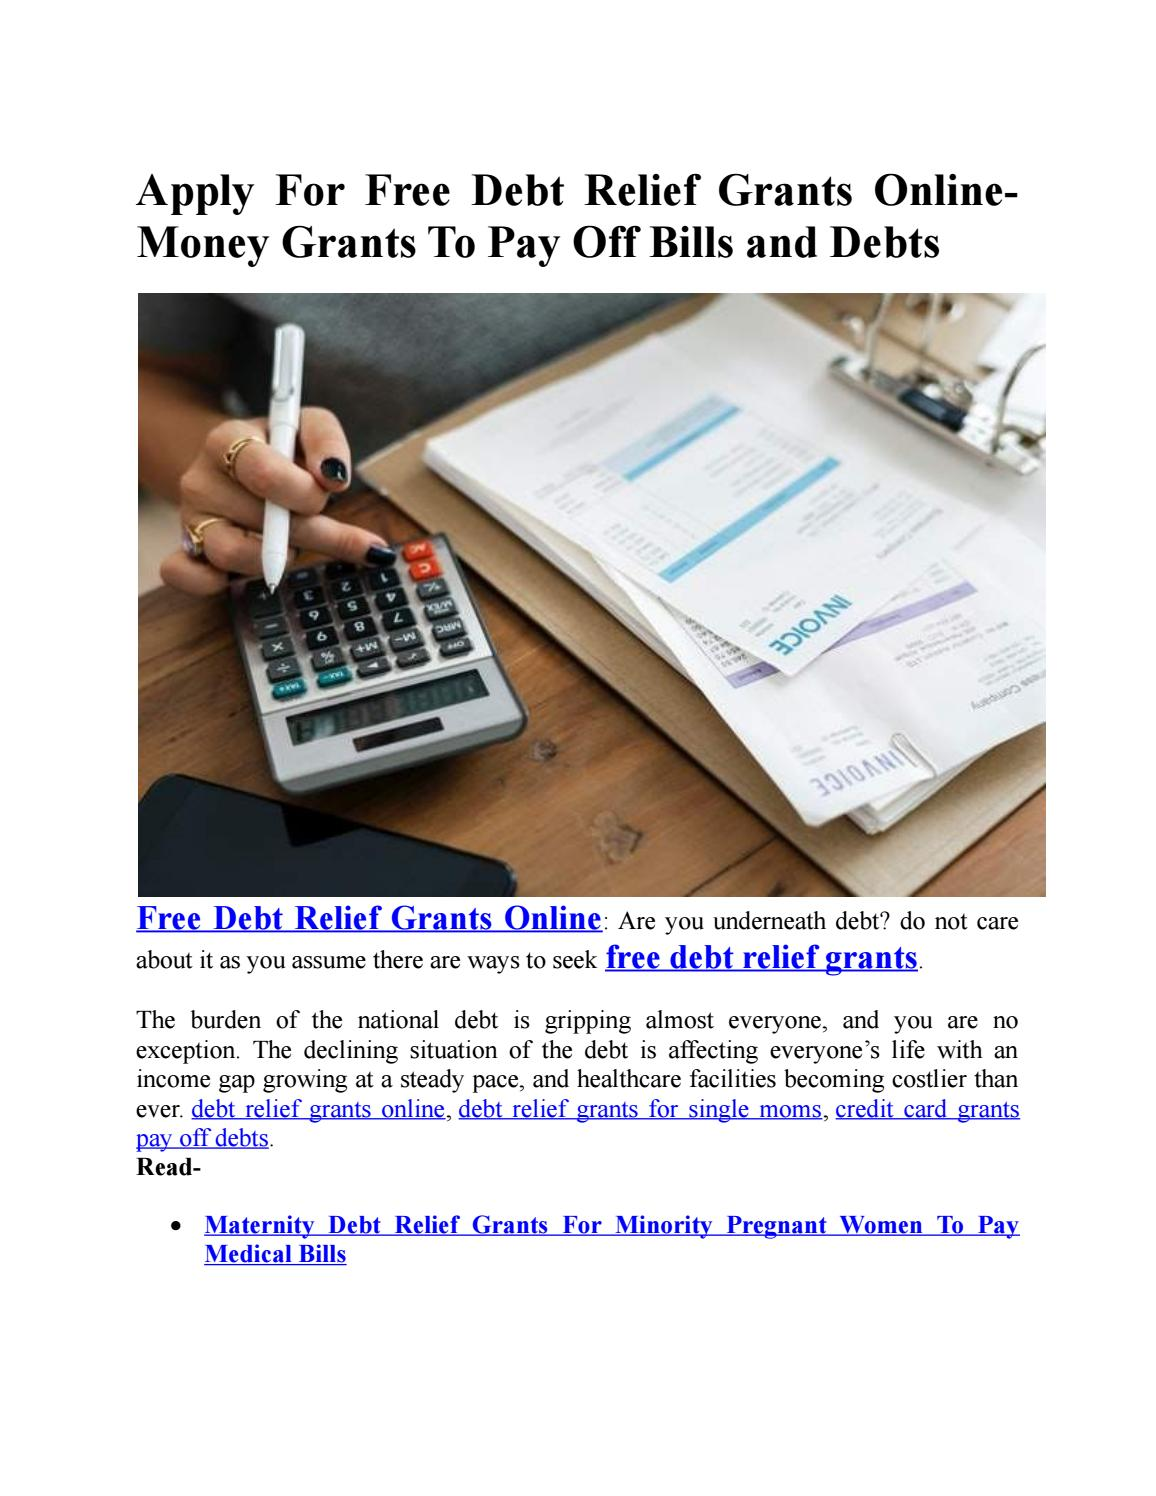 Apply For Free Debt Relief Grants Online-Money Grants To Pay